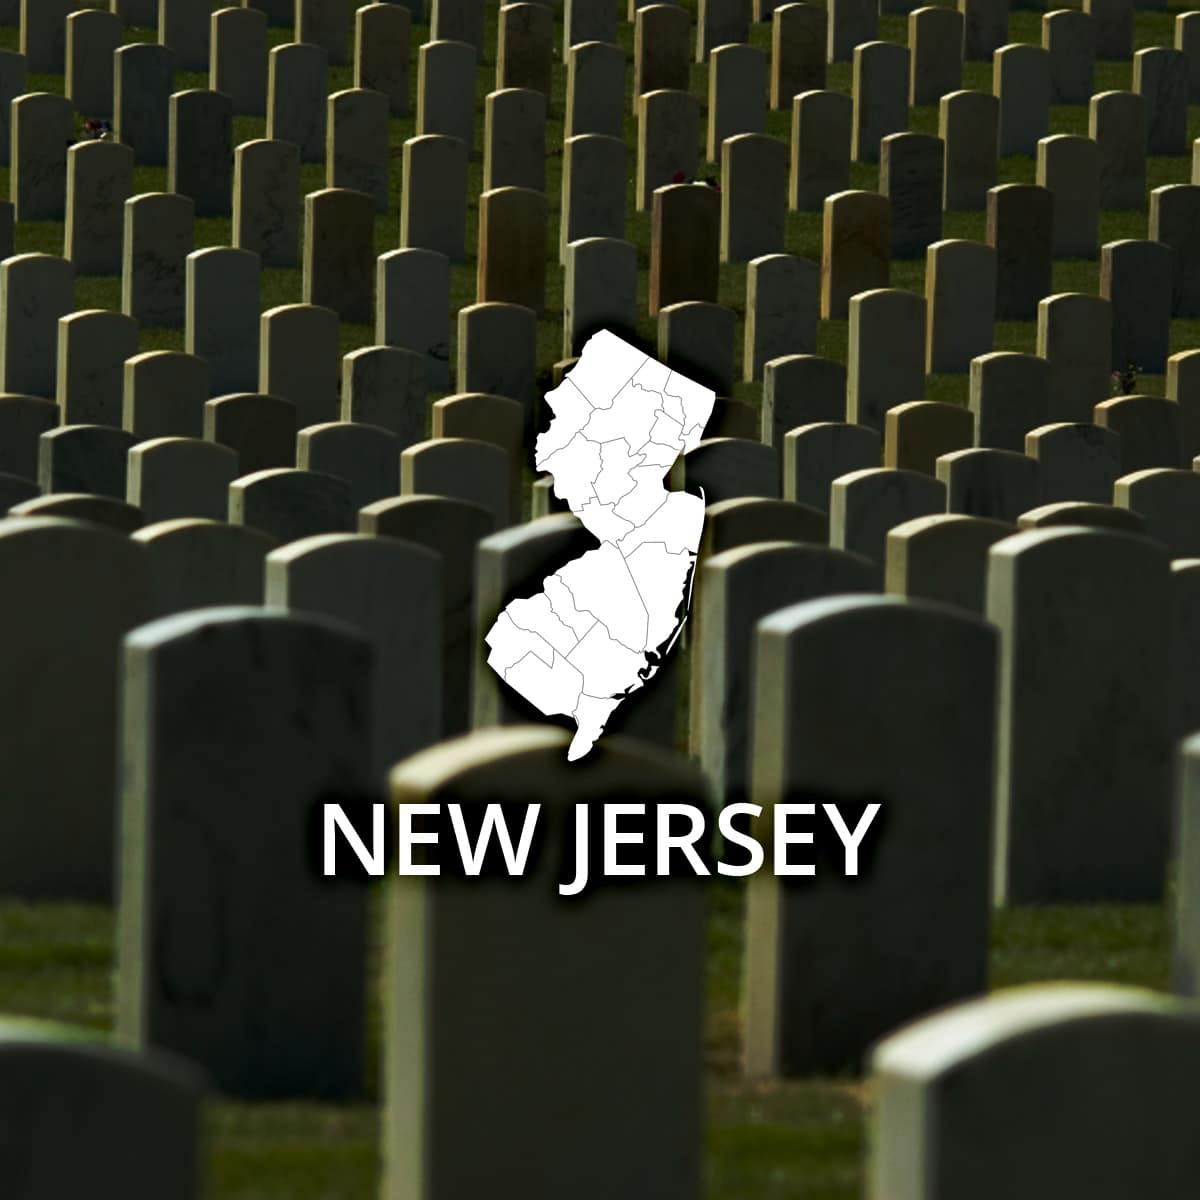 Where to Obtain a New Jersey Death Certificate